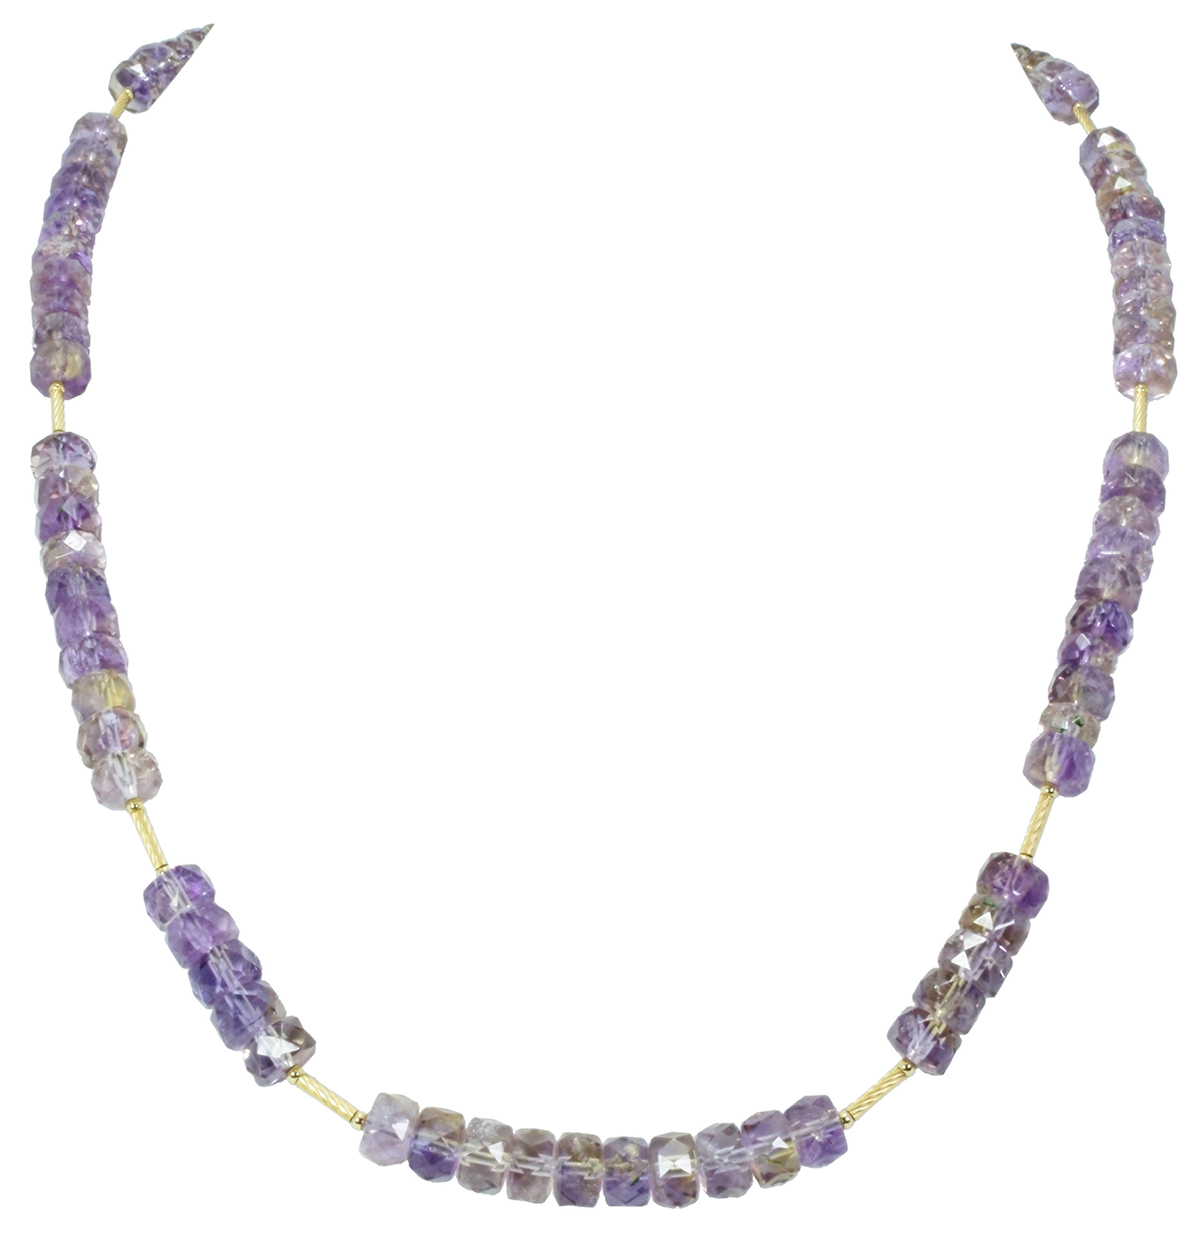 Ametrine Rondelle & Gold-Filled Accent Necklace